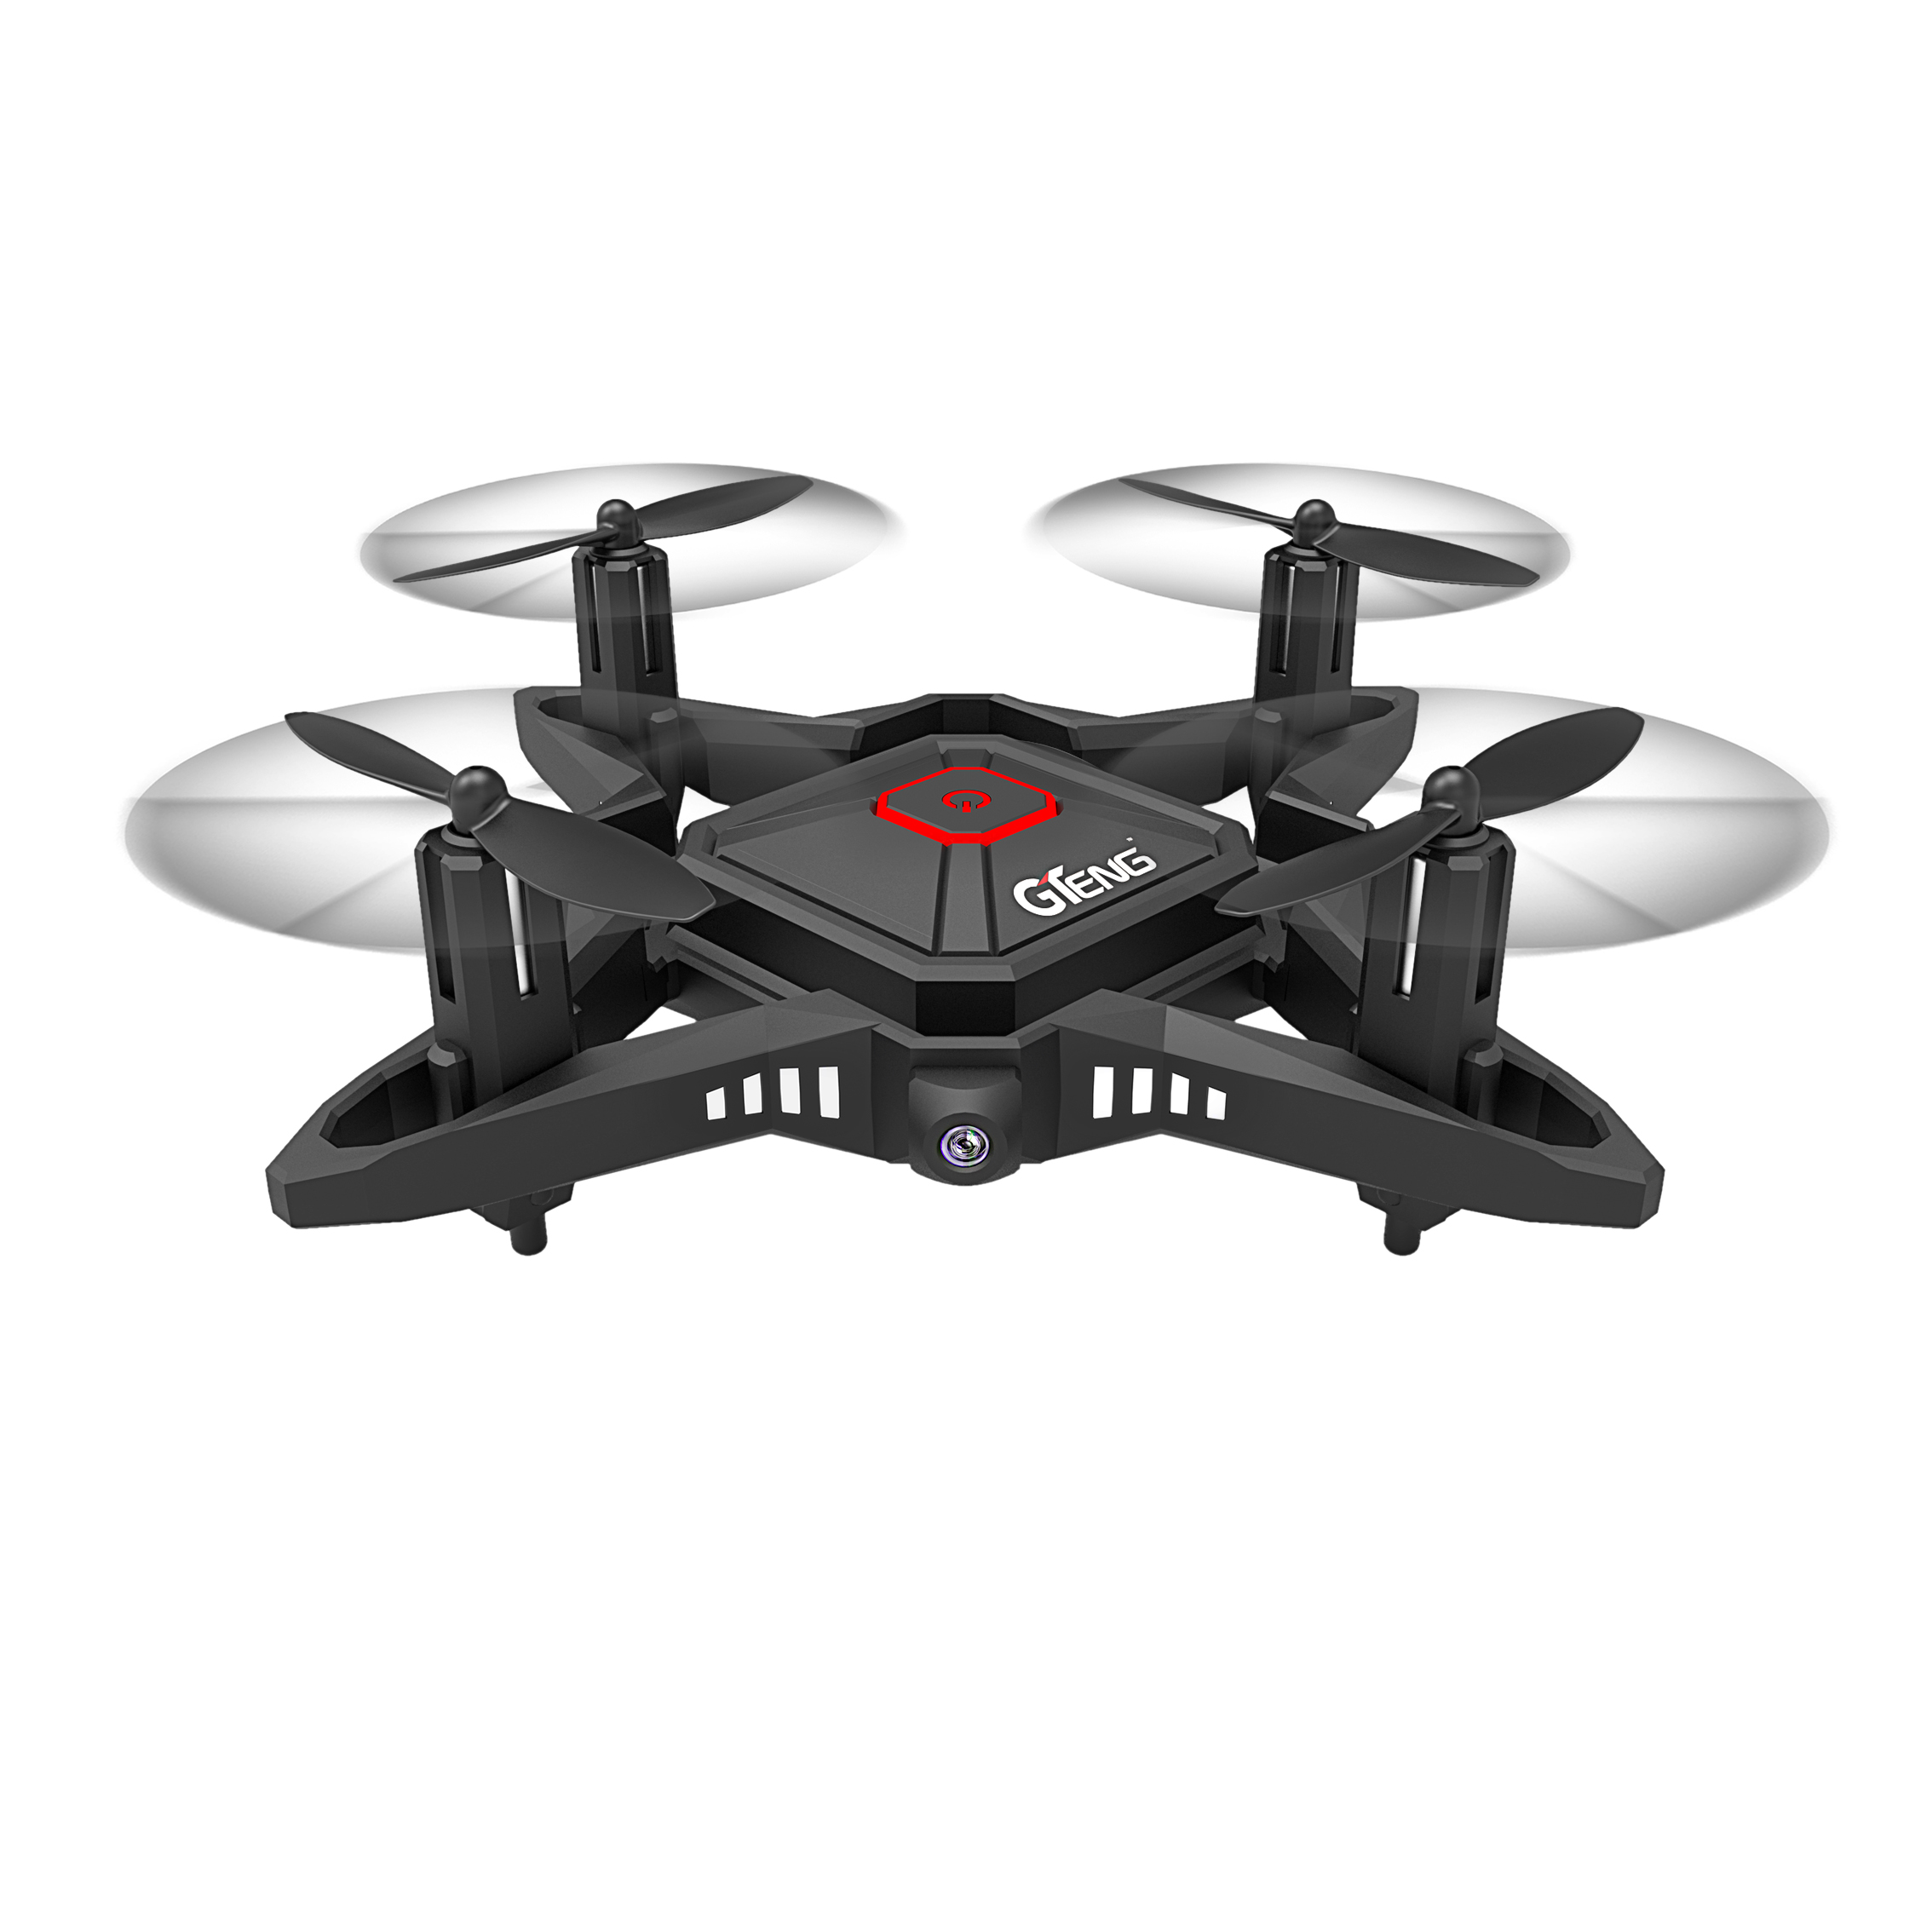 GTeng T911W Mini Drone Wifi FPV 0.3MP Camera quadrocopter transformation Coreless Motor 2.4G Remote Control Helicoputer original gteng cw motor